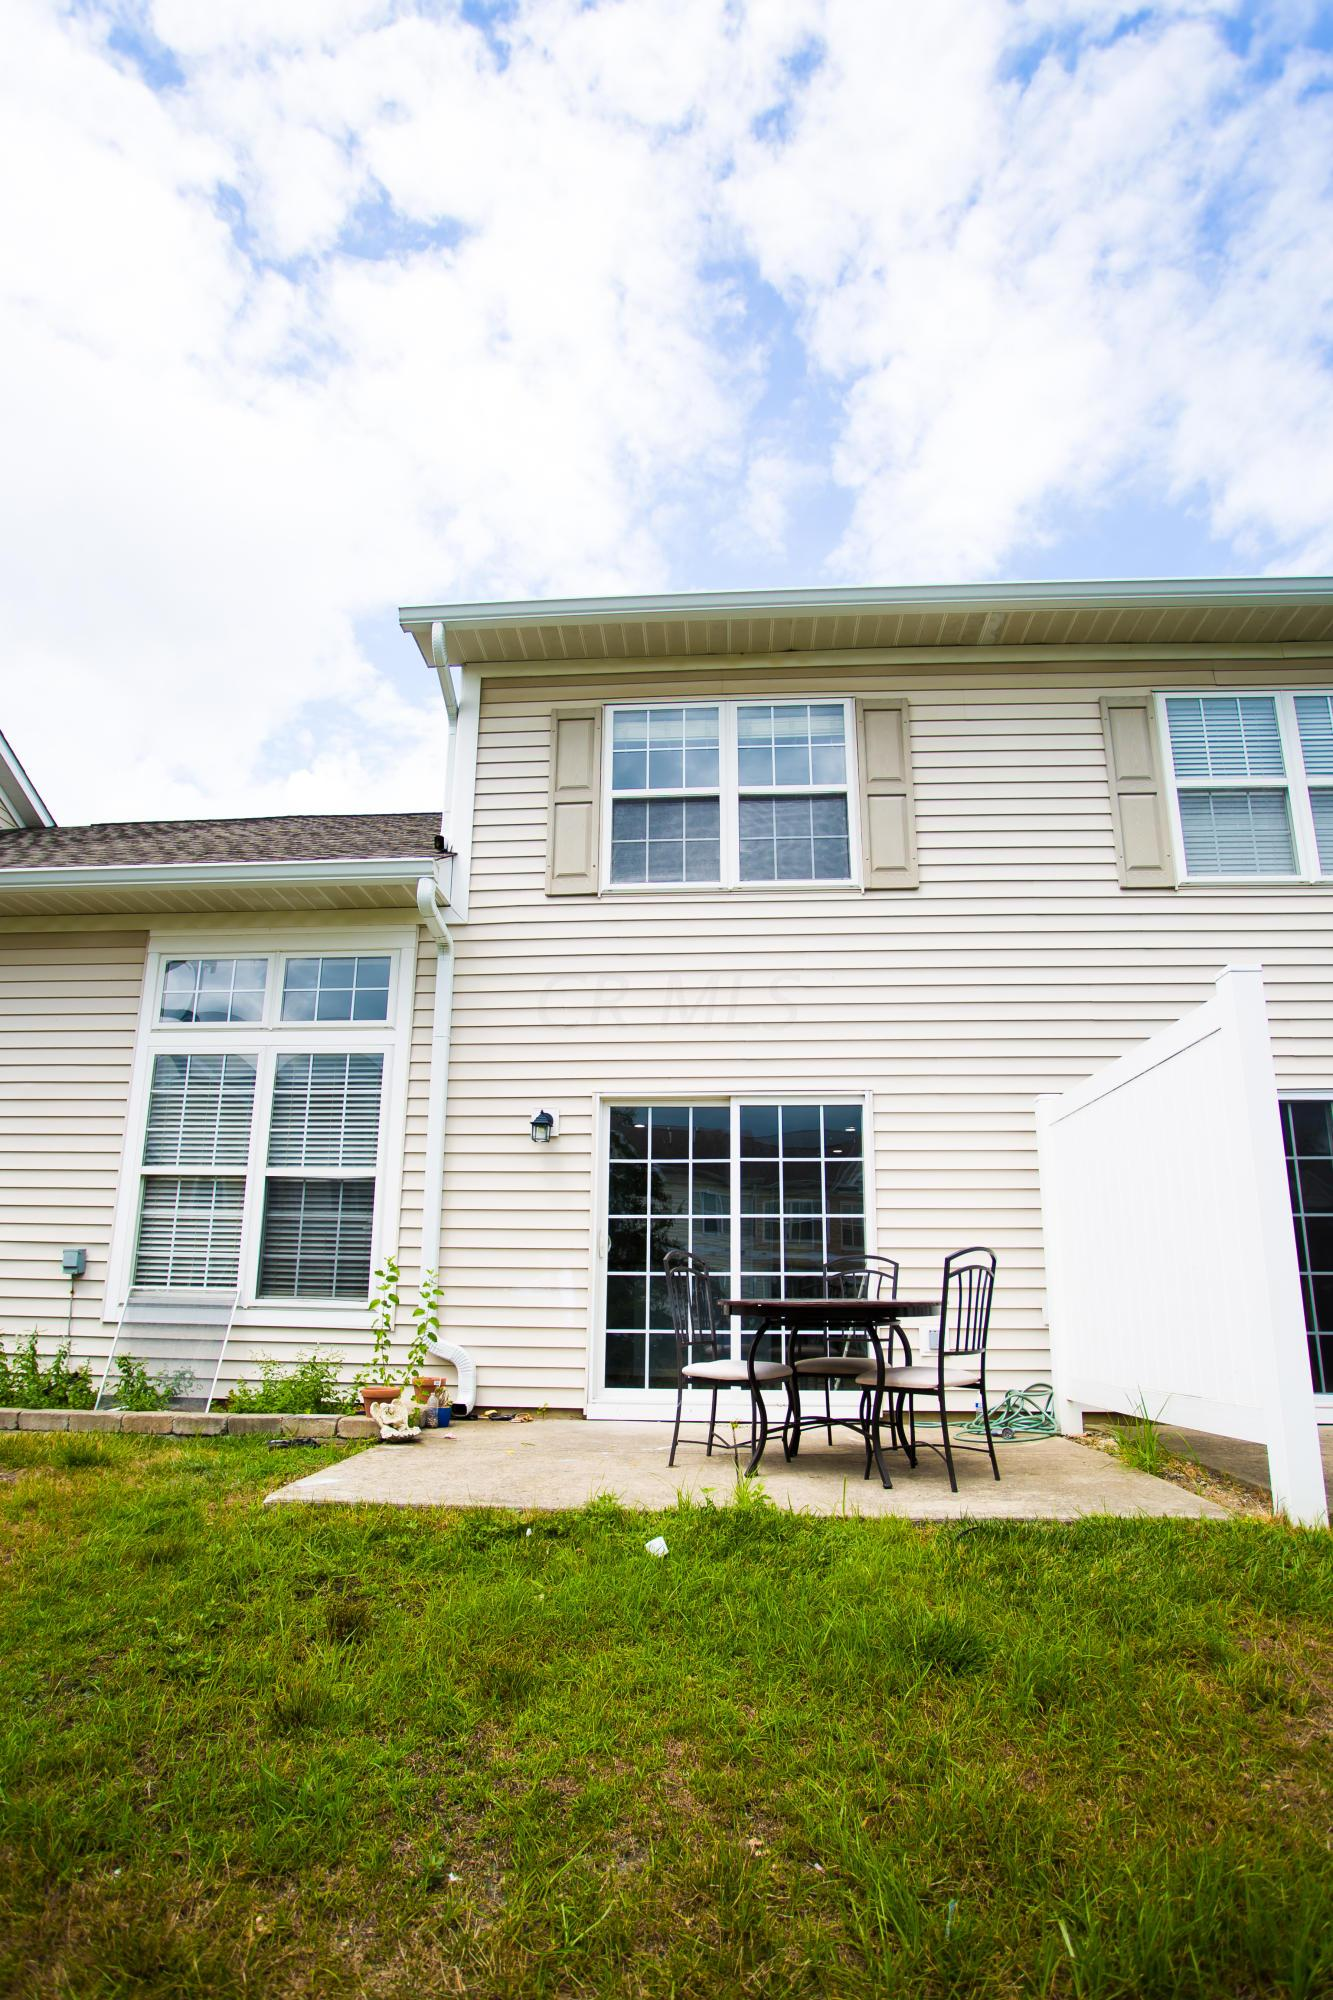 4891 Common Market Place, Dublin, Ohio 43016, 2 Bedrooms Bedrooms, ,3 BathroomsBathrooms,Residential,For Sale,Common Market,220025827